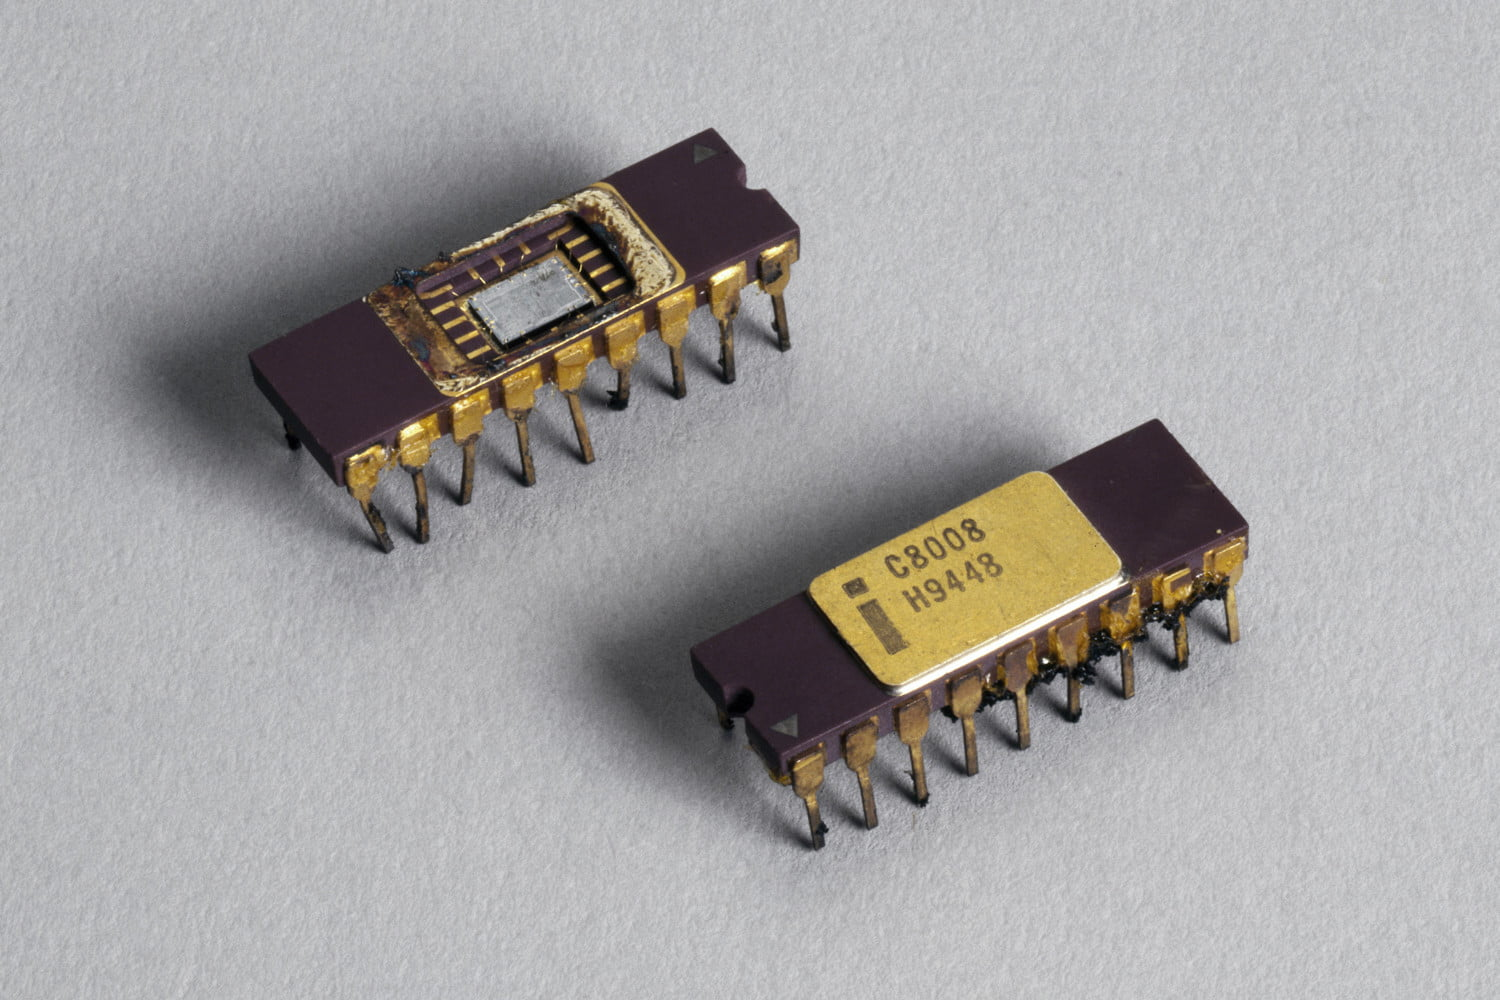 7 Reasons The End Of Moores Law Isnt Good Computers Inside A Typical Microchip You Can See Integrated Circuit And Two Intel 8080 Microprocessor Chips 1970s